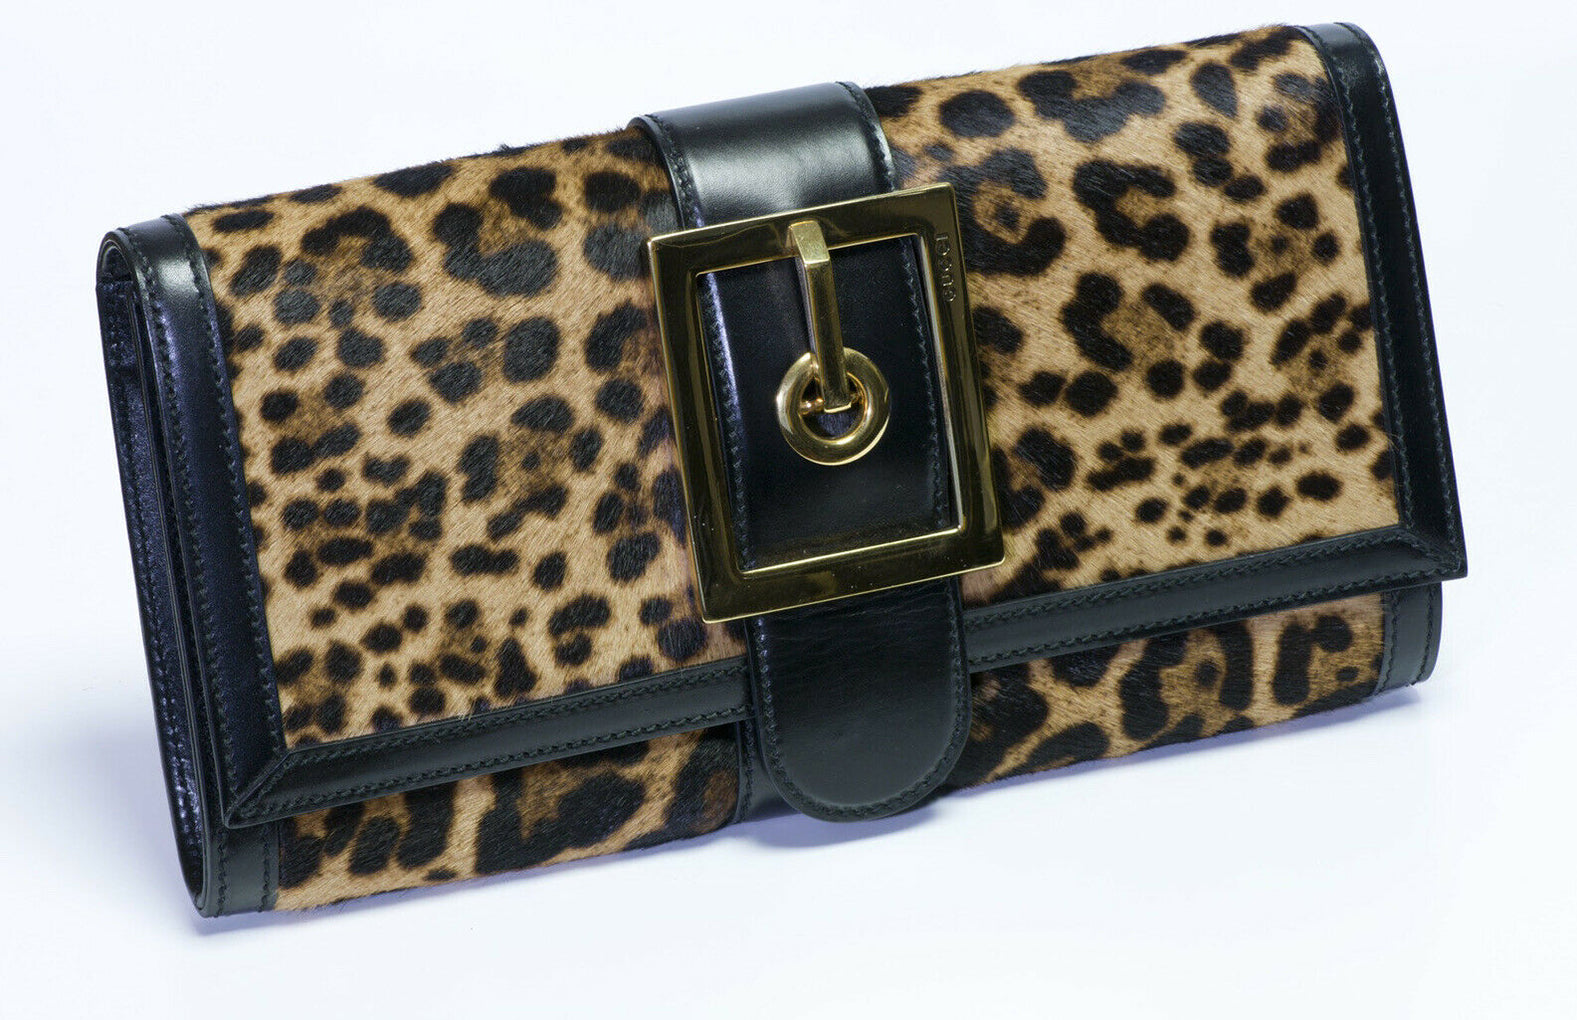 gucci-lady-brown-black-leopard-calf-hair-leather-clutch-bag